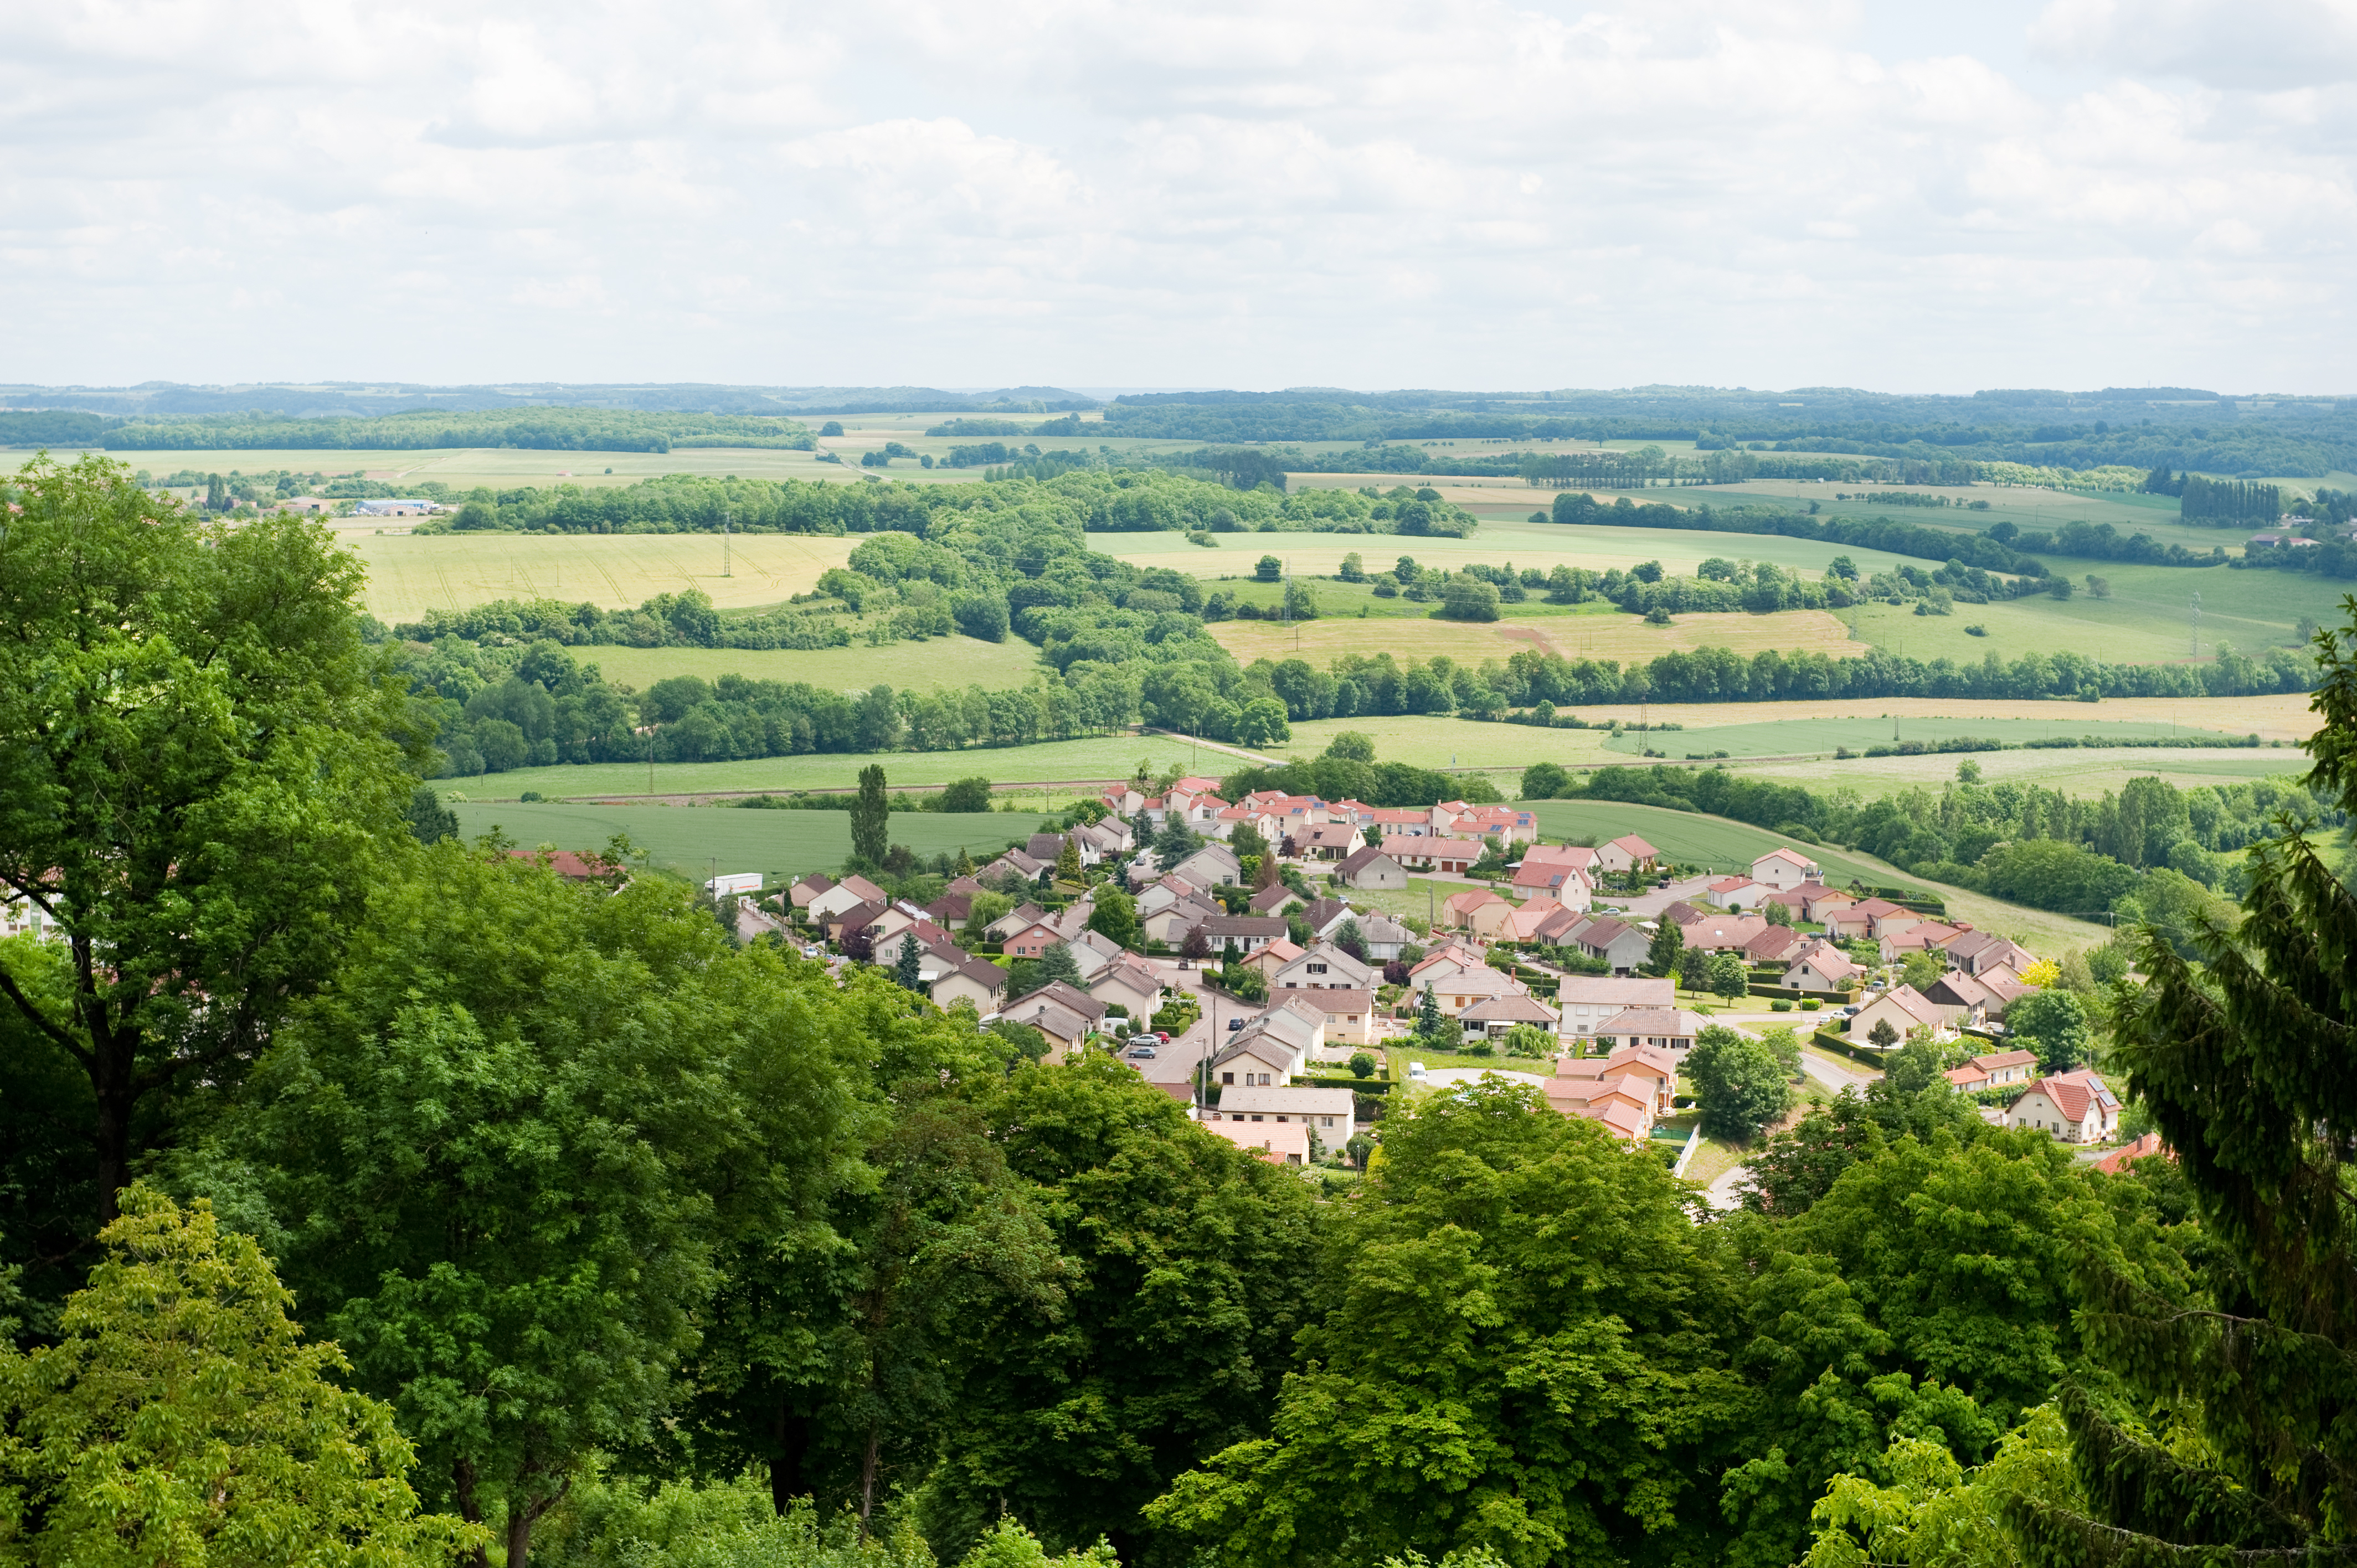 View-to-a-little-typical-French-village-in-the-Haute-Marne-in-France-from-the-walls-of-Langres